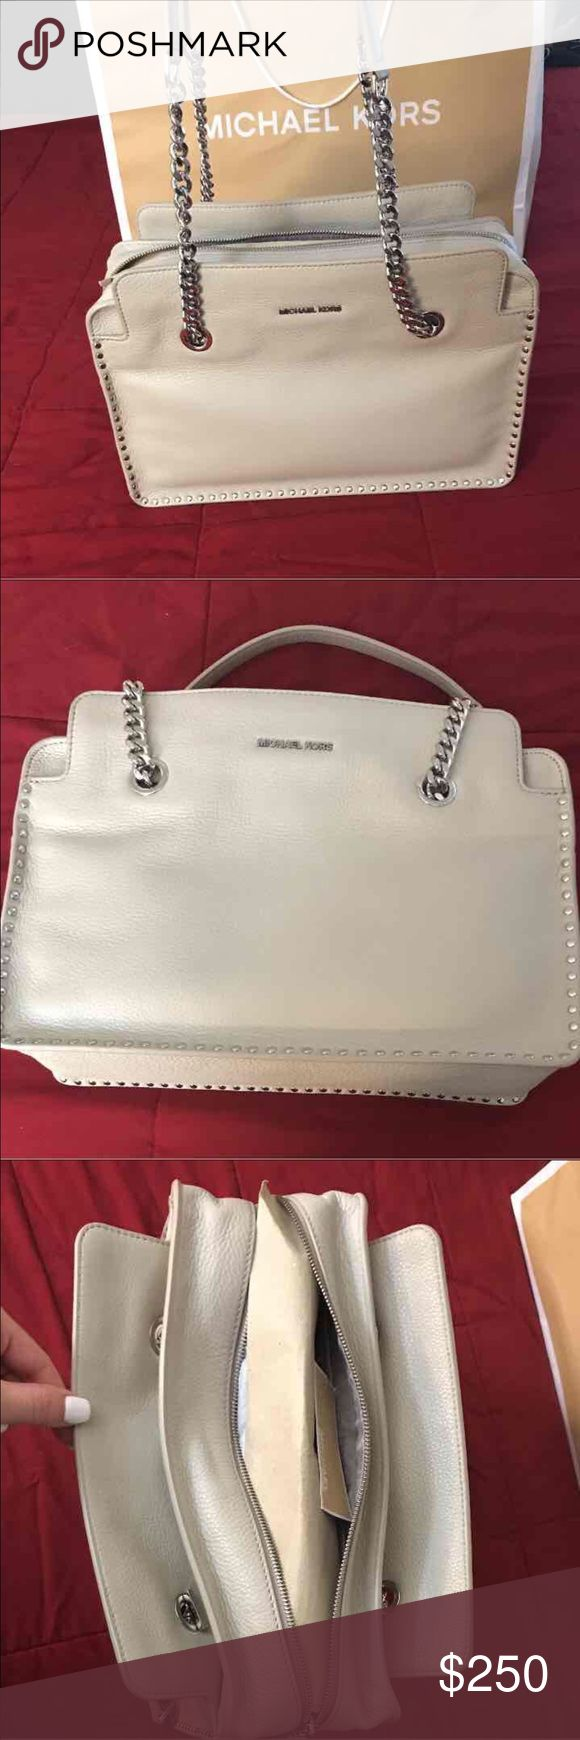 NWT MICHAEL KORS LG CEMENT SATCHEL Gorgeous Brand New off white/ light grey large leather satchel with chrome studs and chain straps. Still has tags. Original price $368. Has multiple pockets. This bag is stunning. Open to offers! Michael Kors Bags Satchels